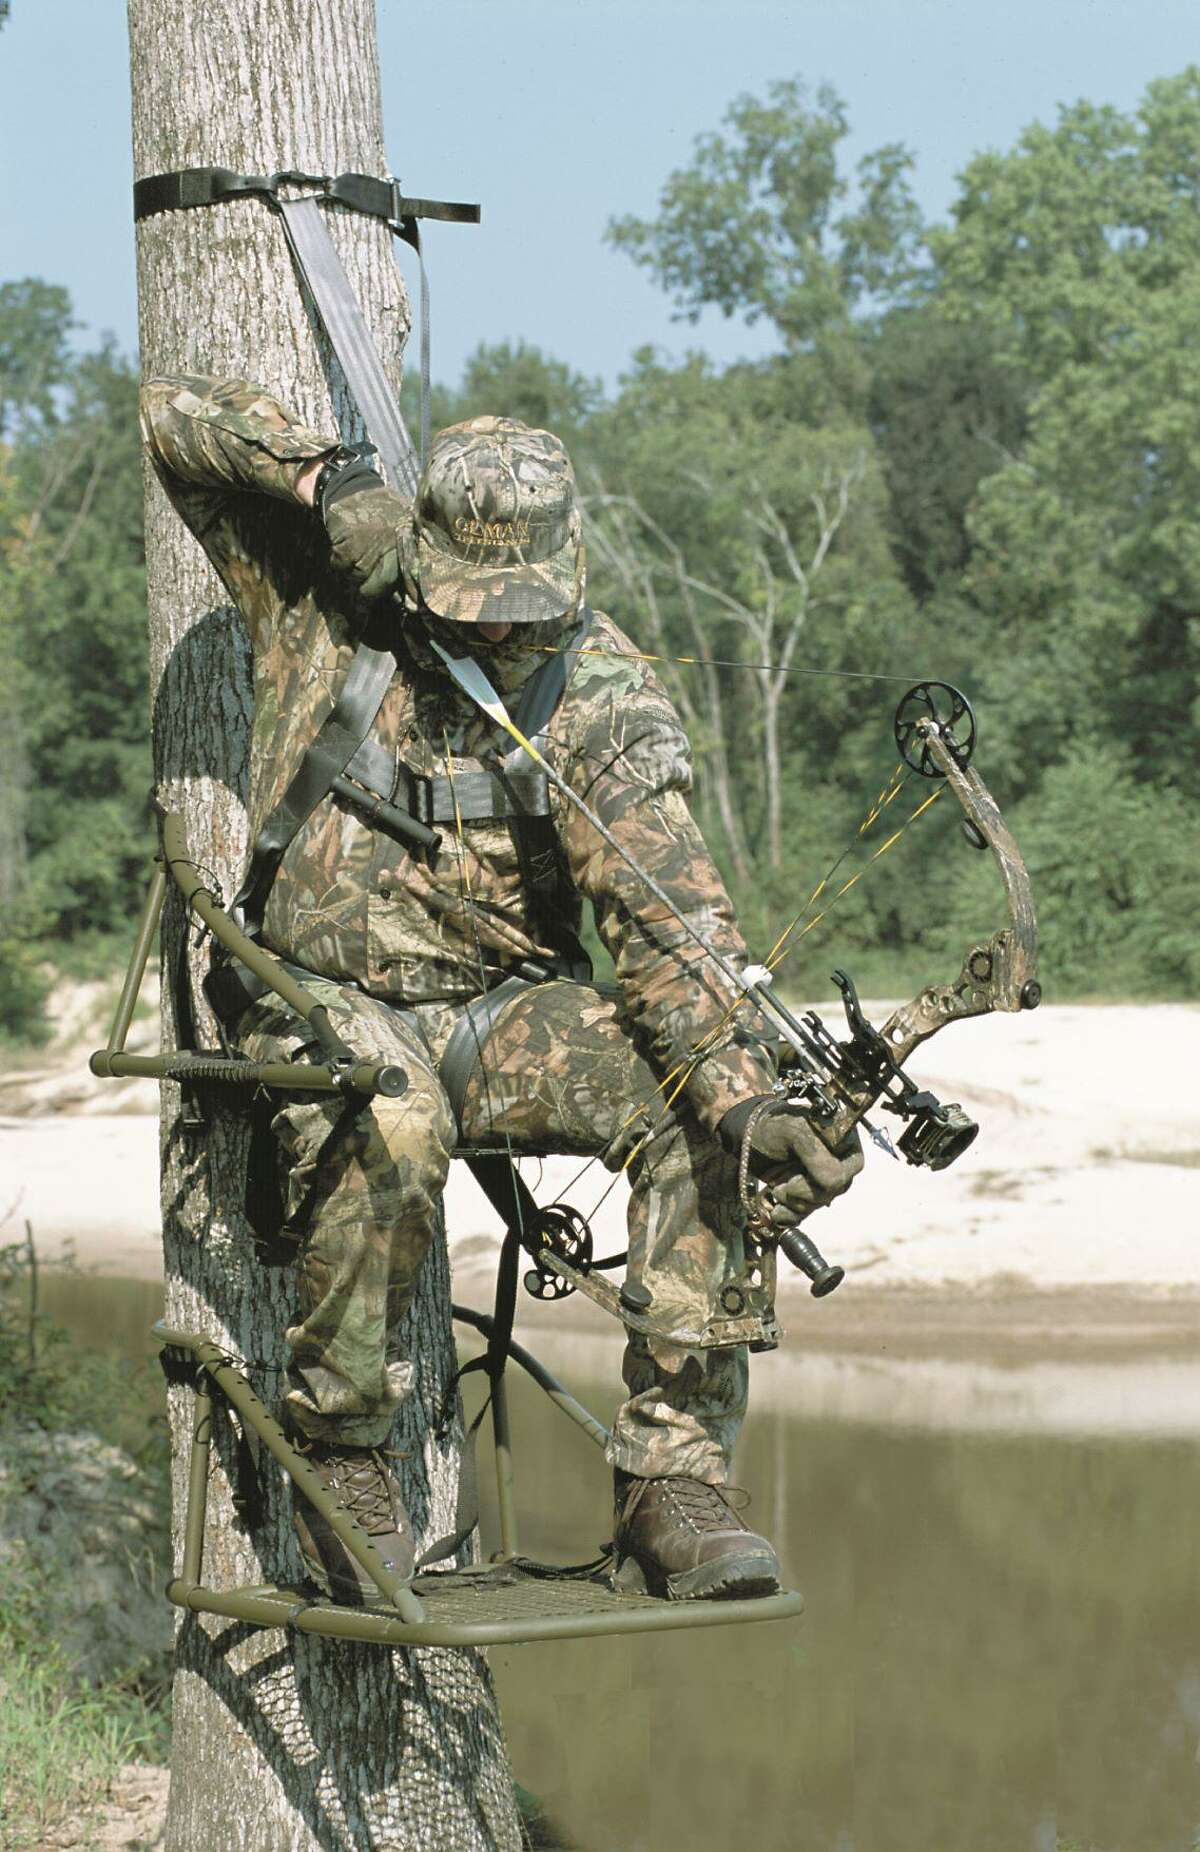 This bow hunter is in a tree stand and with the proper camouflage and all of the safety equipment.